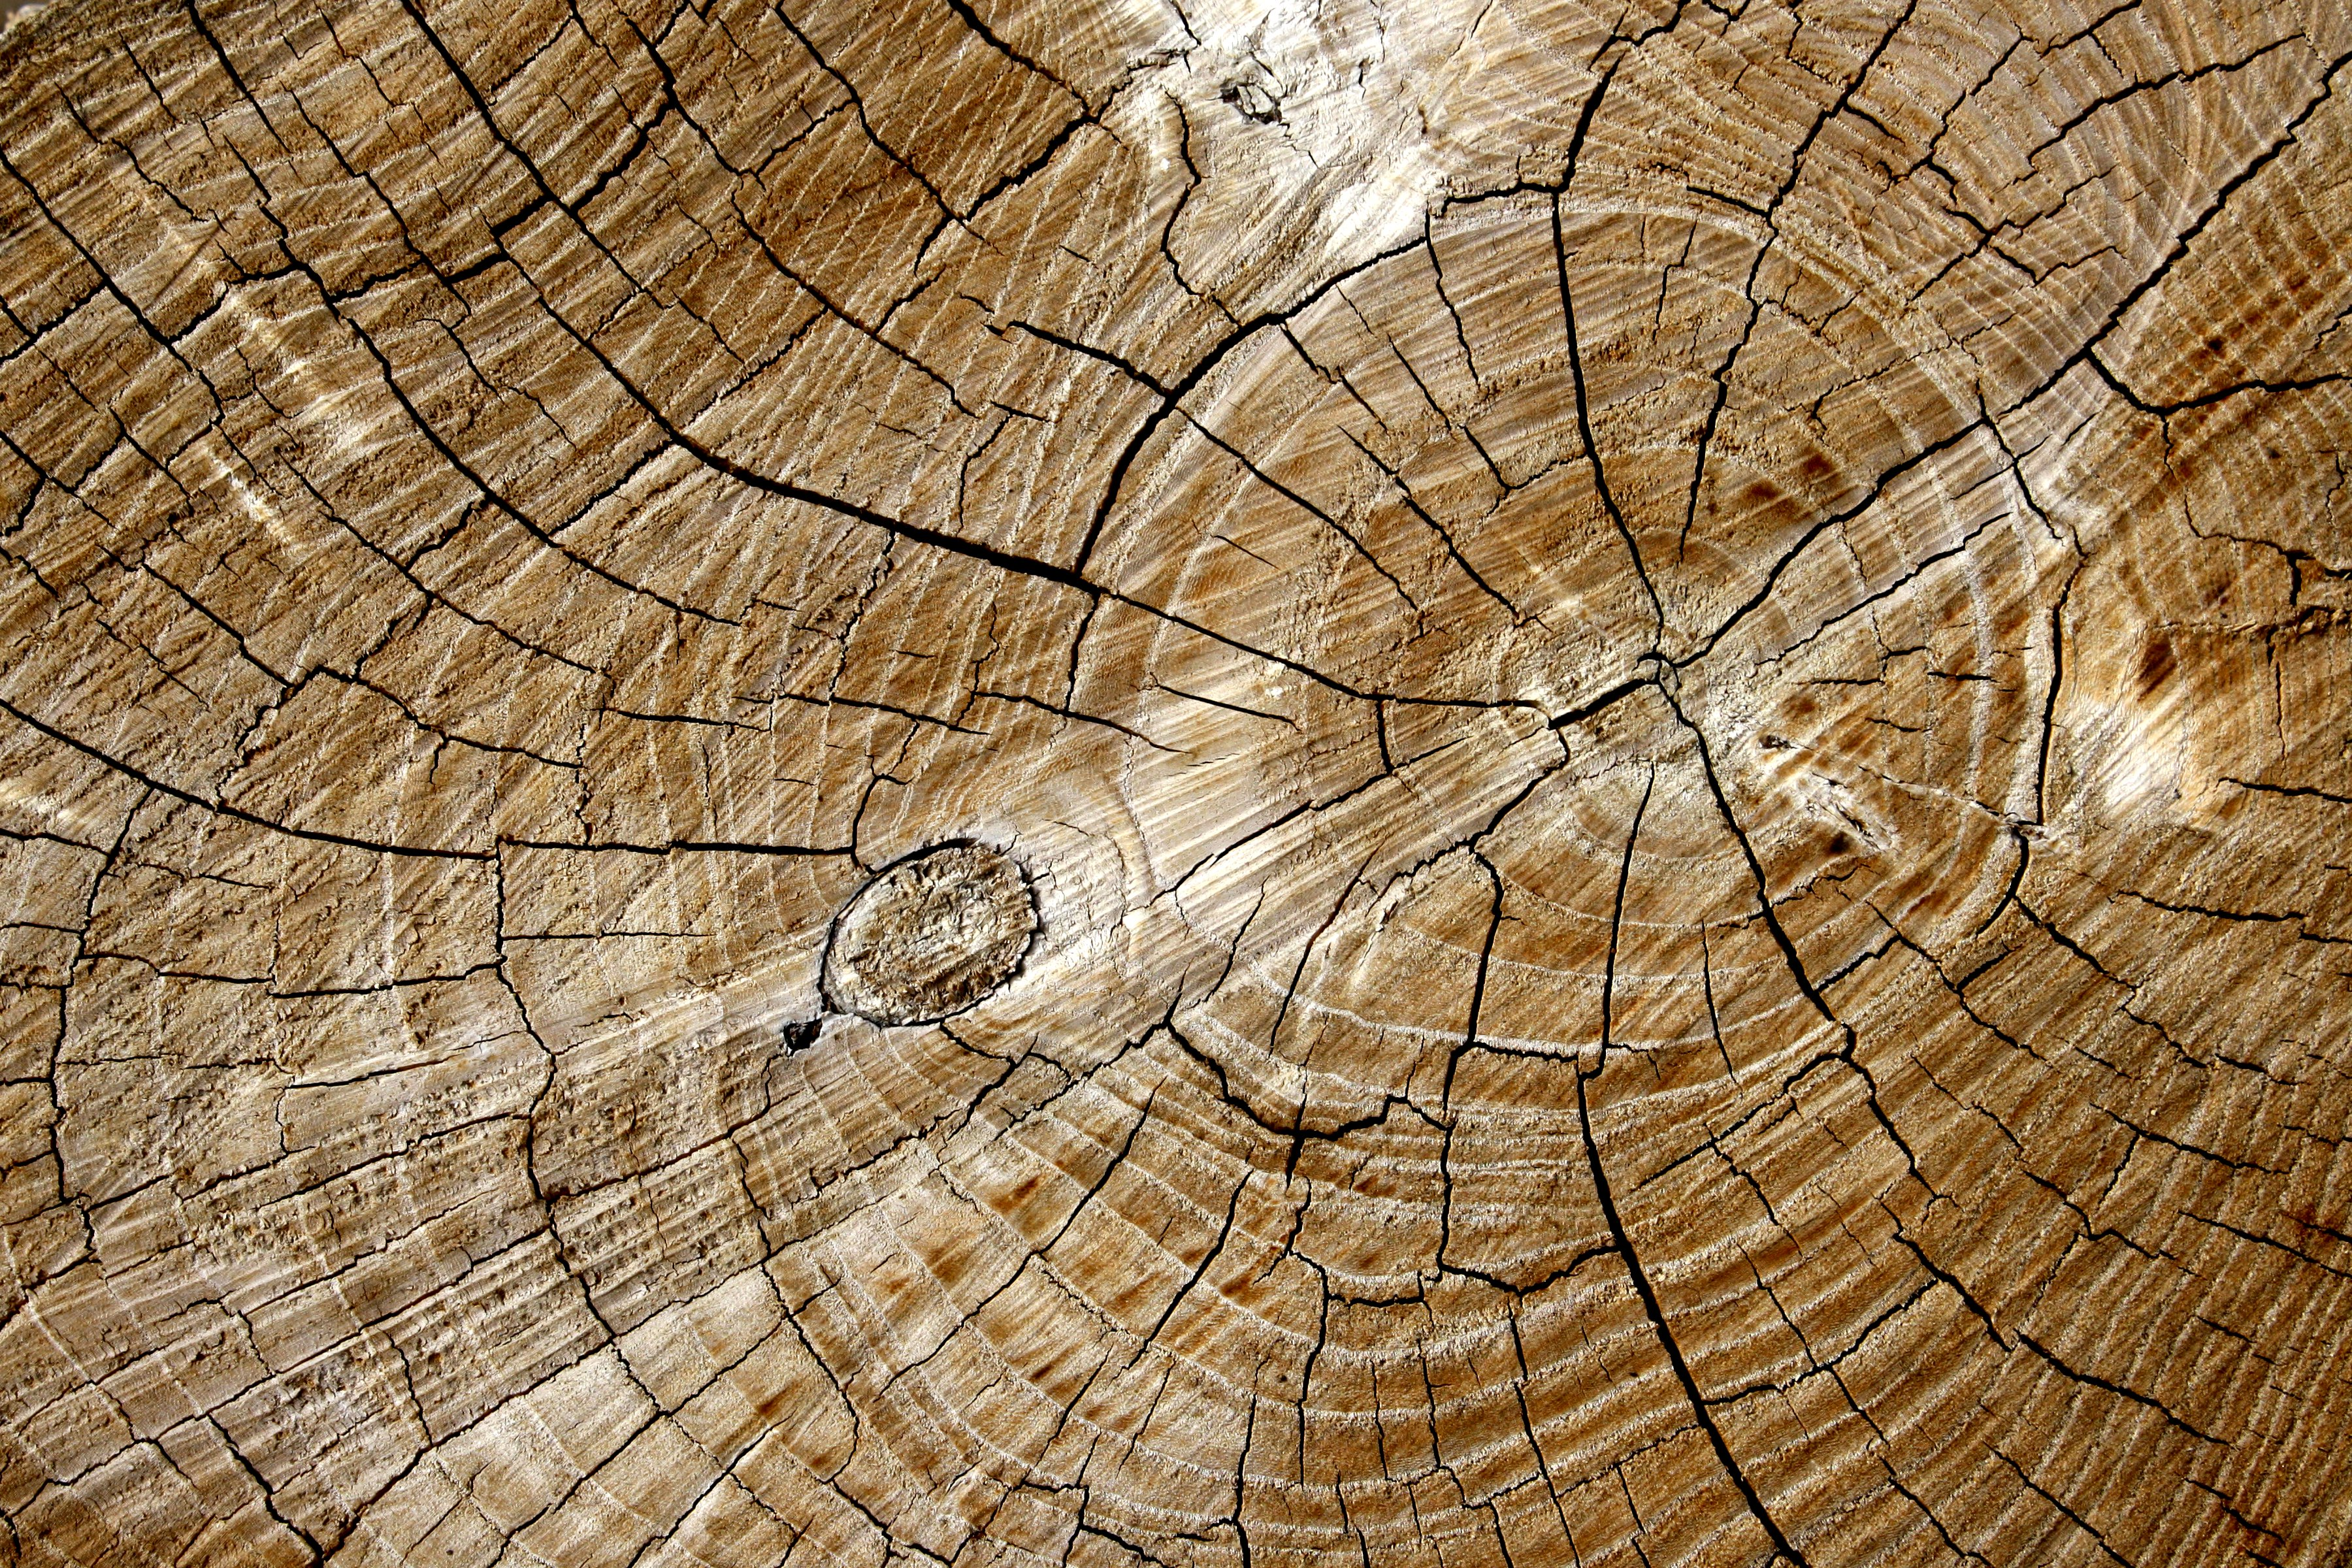 Cut End of Log with Tree Rings Texture   High Resolution Photo 3600x2400